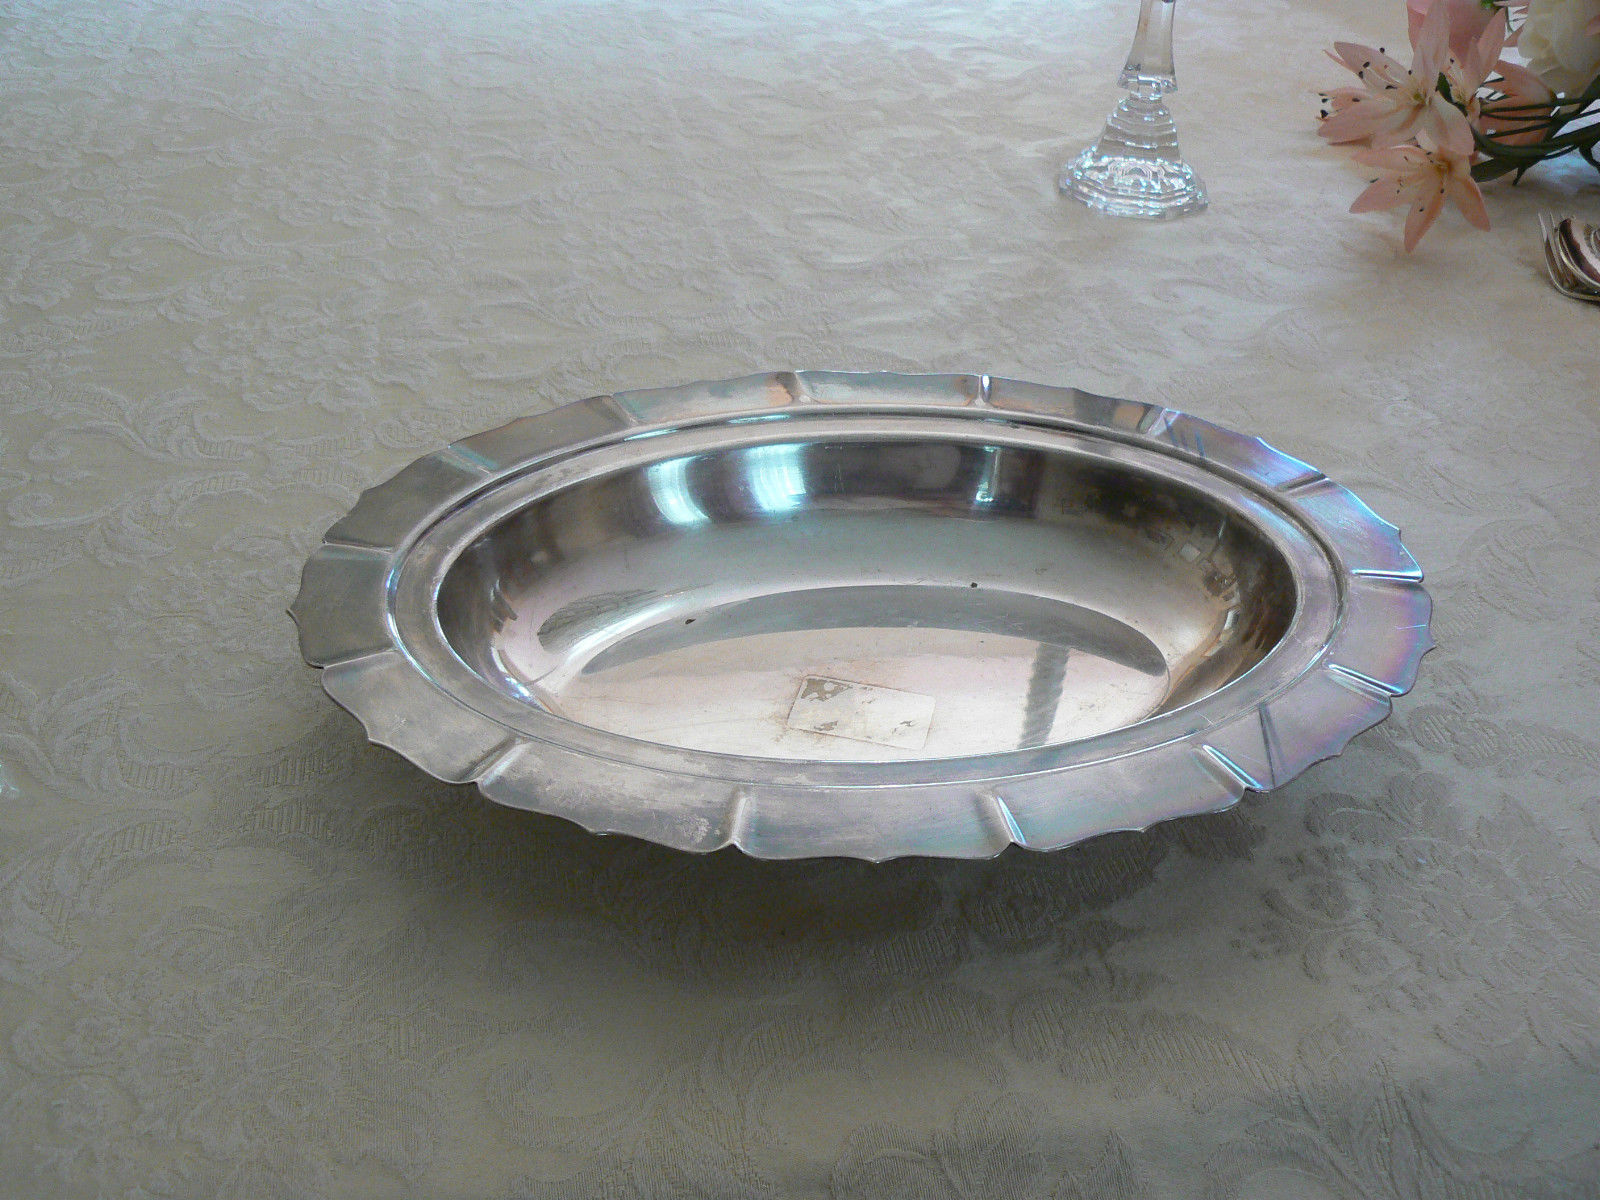 Antique/Vintage International Silver Co. Silverplate Oval Dish Early American PT